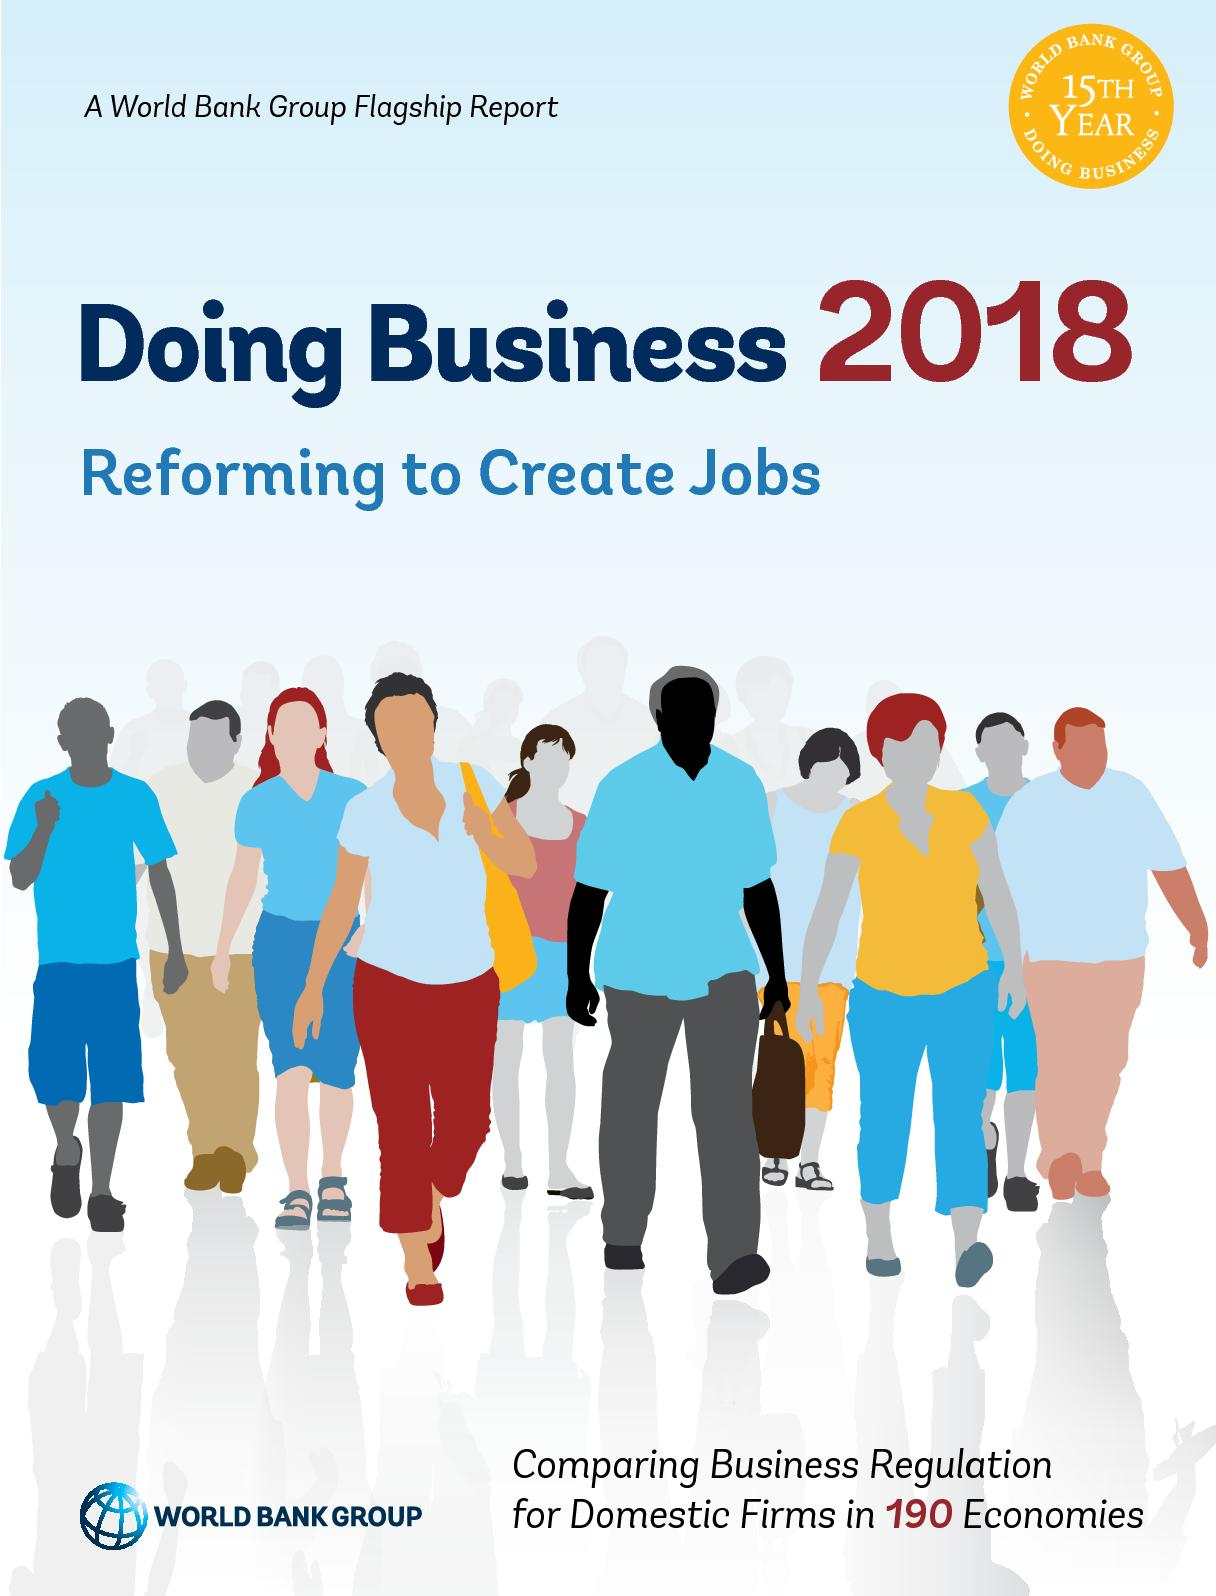 Calaméo - Doing Business 2018: Reforming to Create Jobs